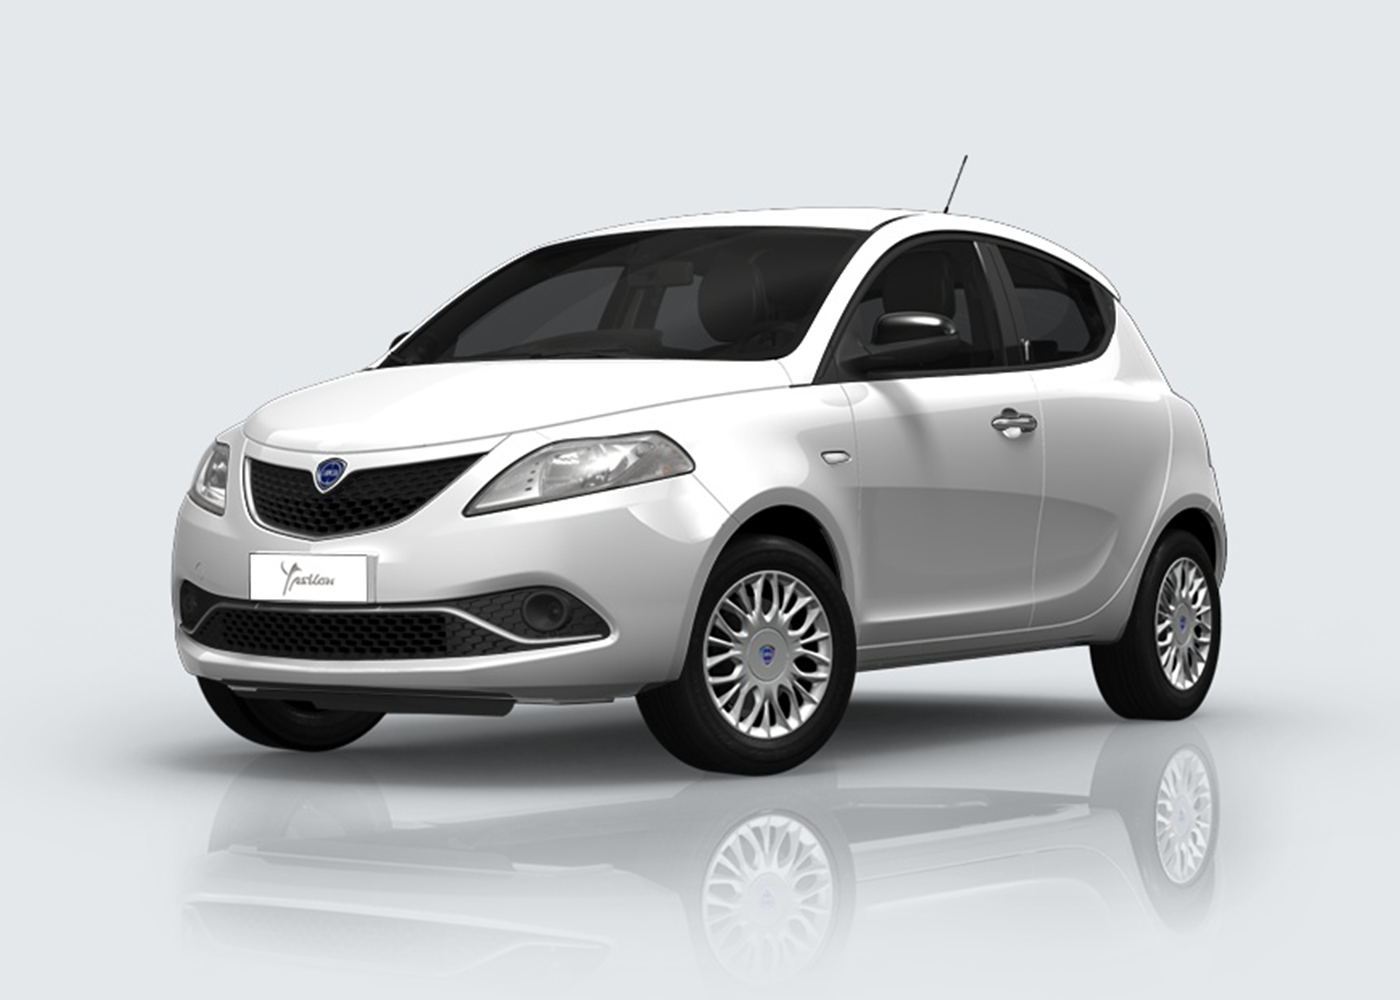 lancia ypsilon 1 2 69 cv 5 porte gpl ecochic gold bianco neve km0 a soli 13390 su miacar 7q36t. Black Bedroom Furniture Sets. Home Design Ideas